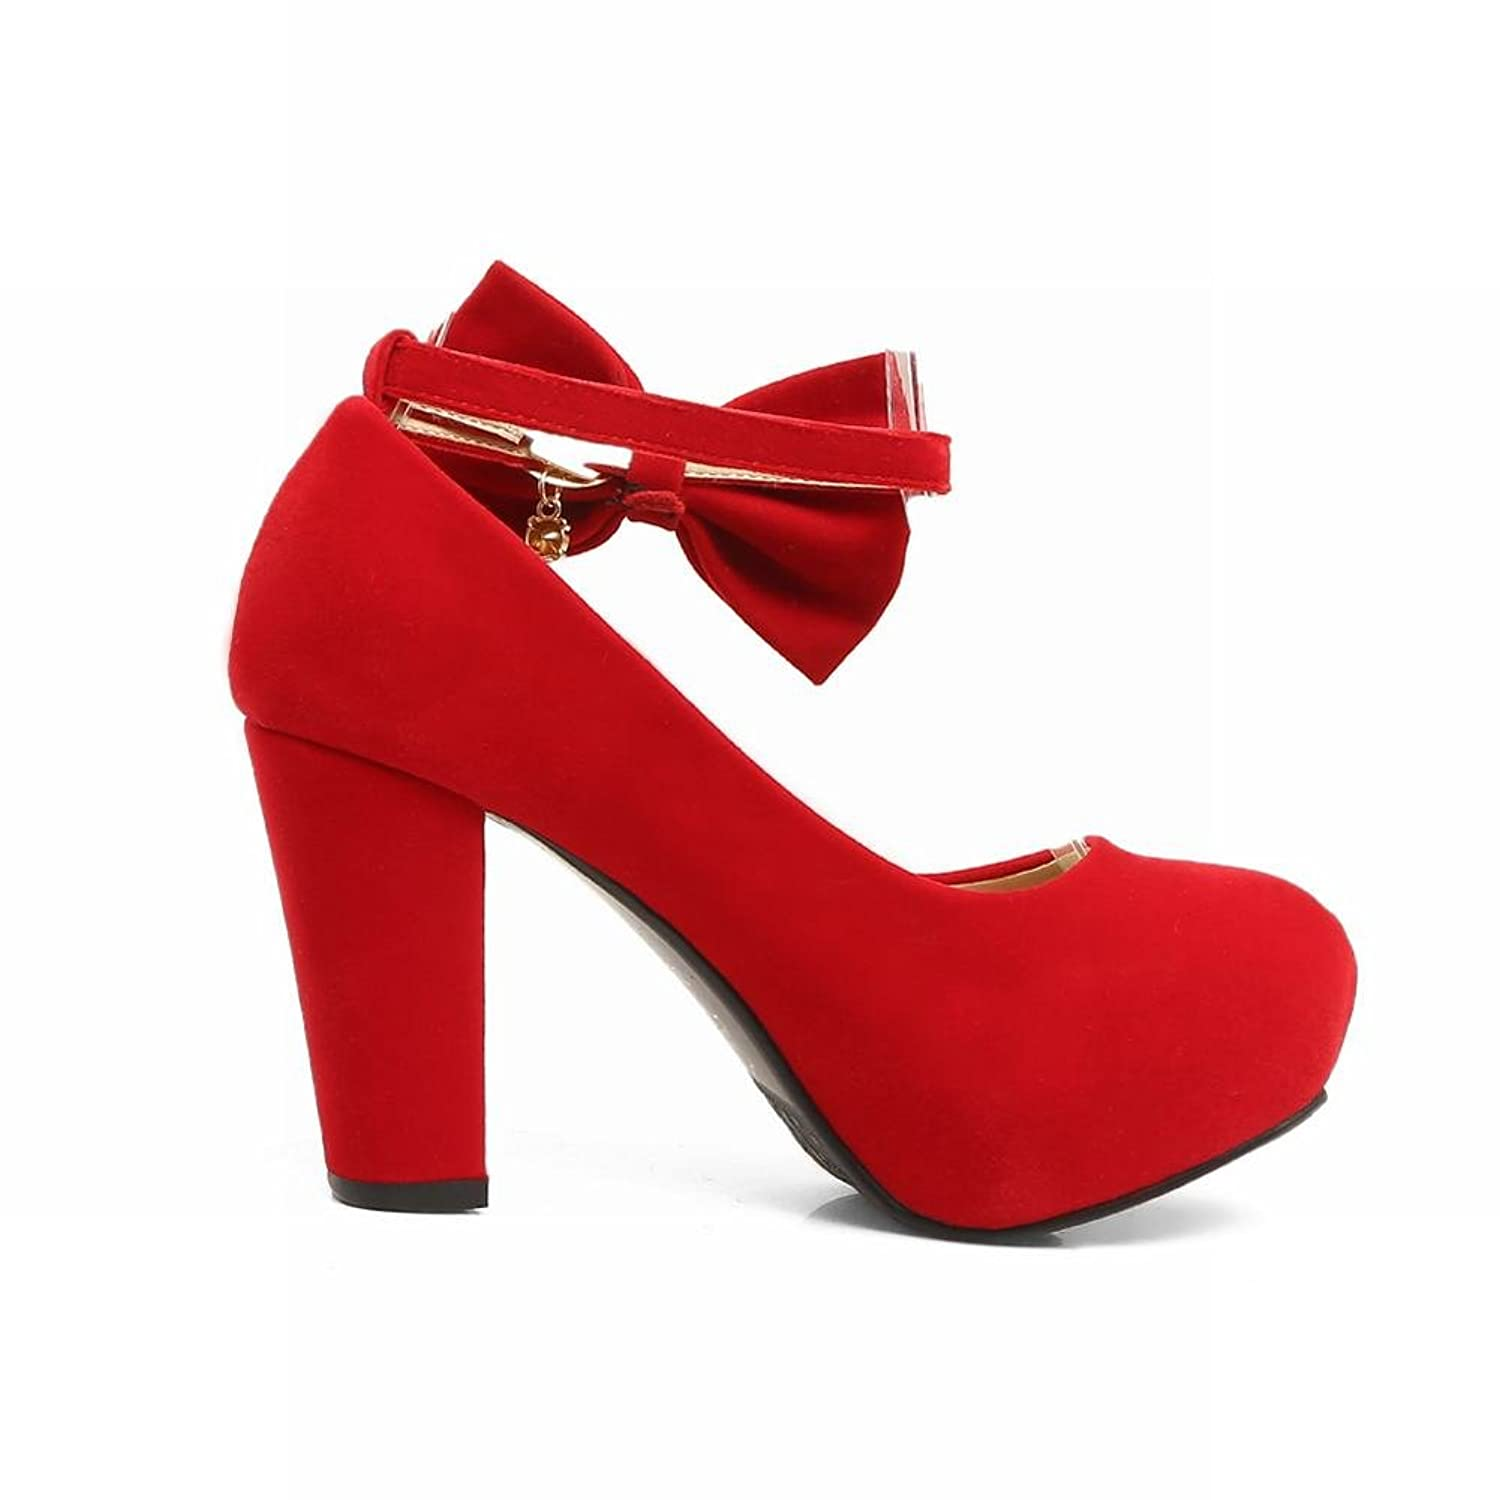 Mee Shoes Women's Sweet Buckle Bow High Heel Court Shoes: Amazon.co.uk:  Shoes & Bags